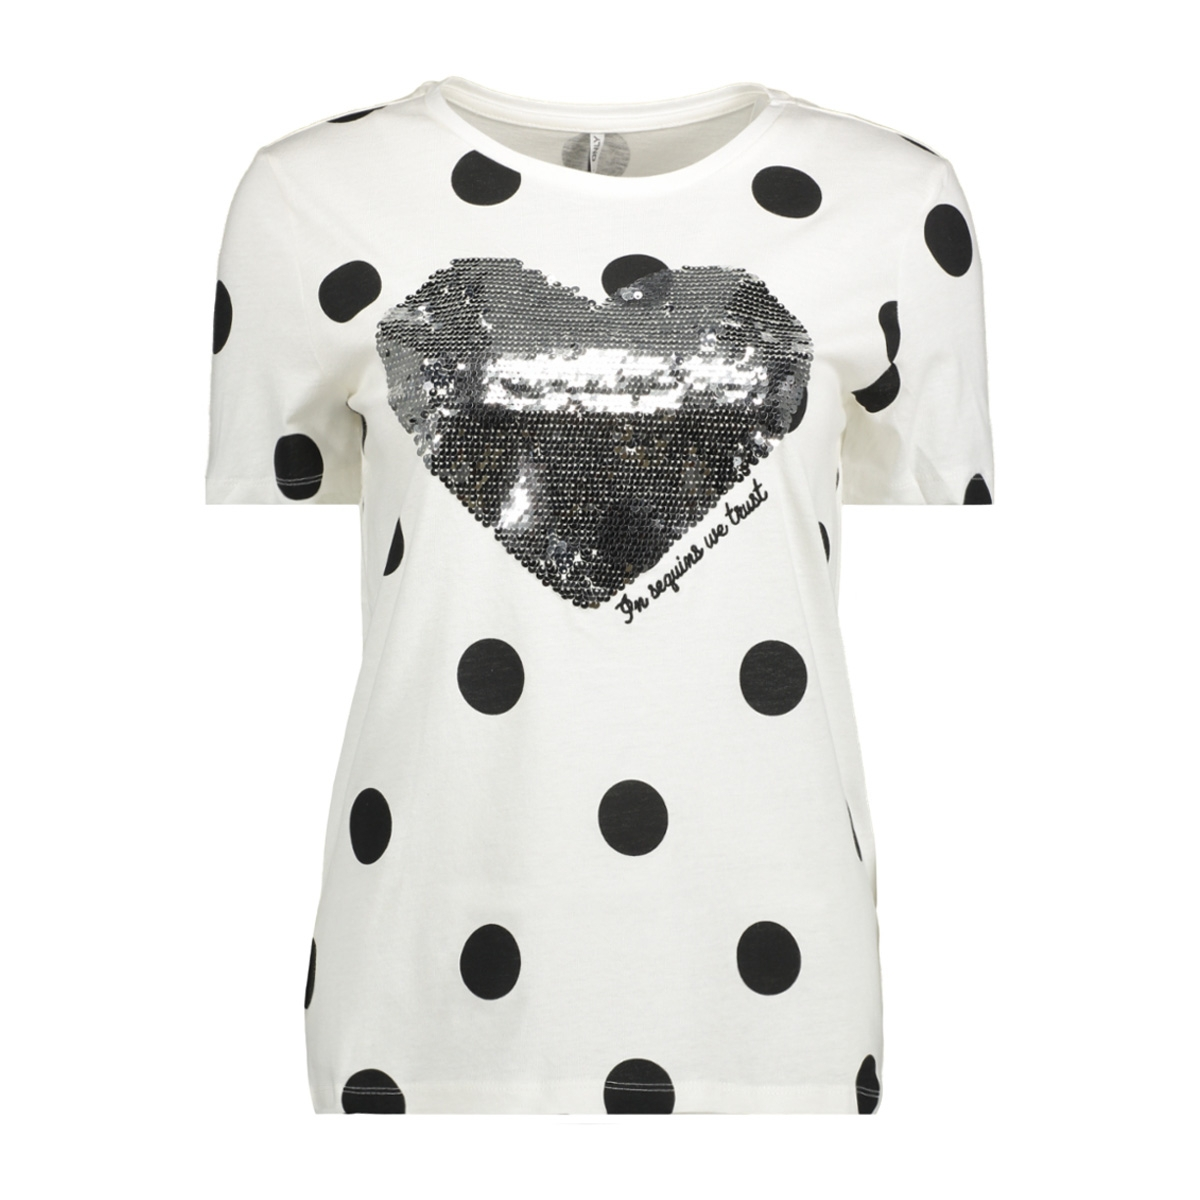 onlkita s/s sweet print top box ess 15150157 only t-shirt cloud dancer/heart(bla